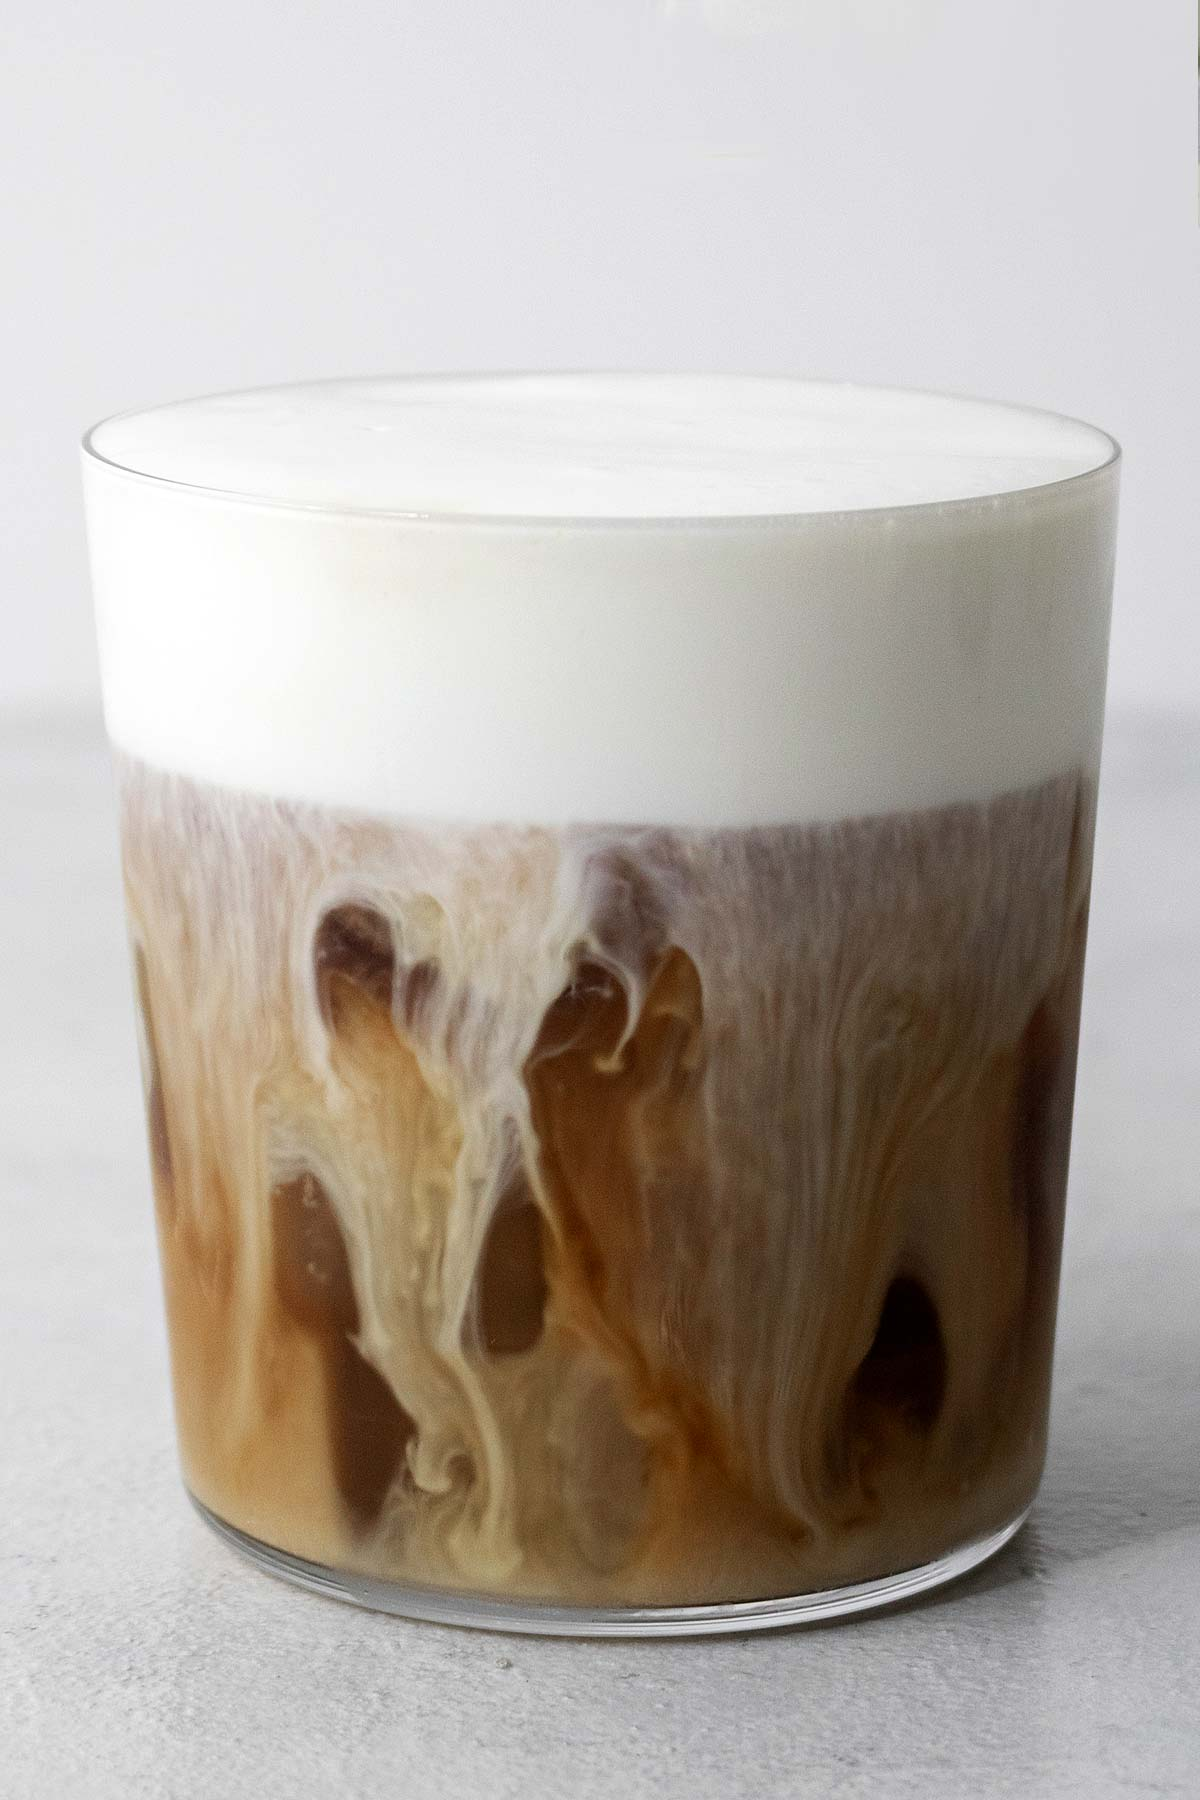 Iced coffee with cold foam.